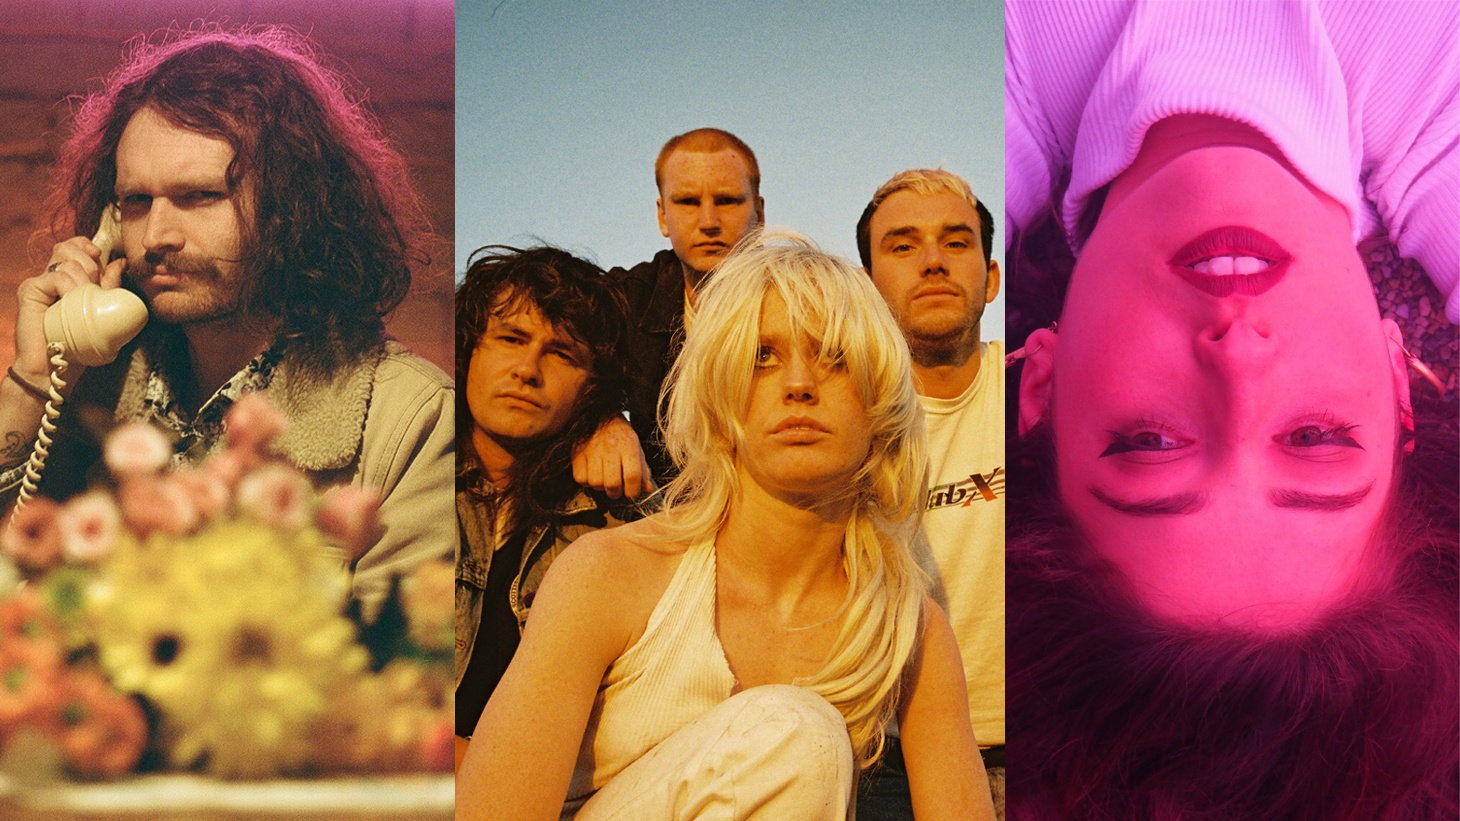 The Florets, Amyl and the Sniffers and Gabriella Cohen.